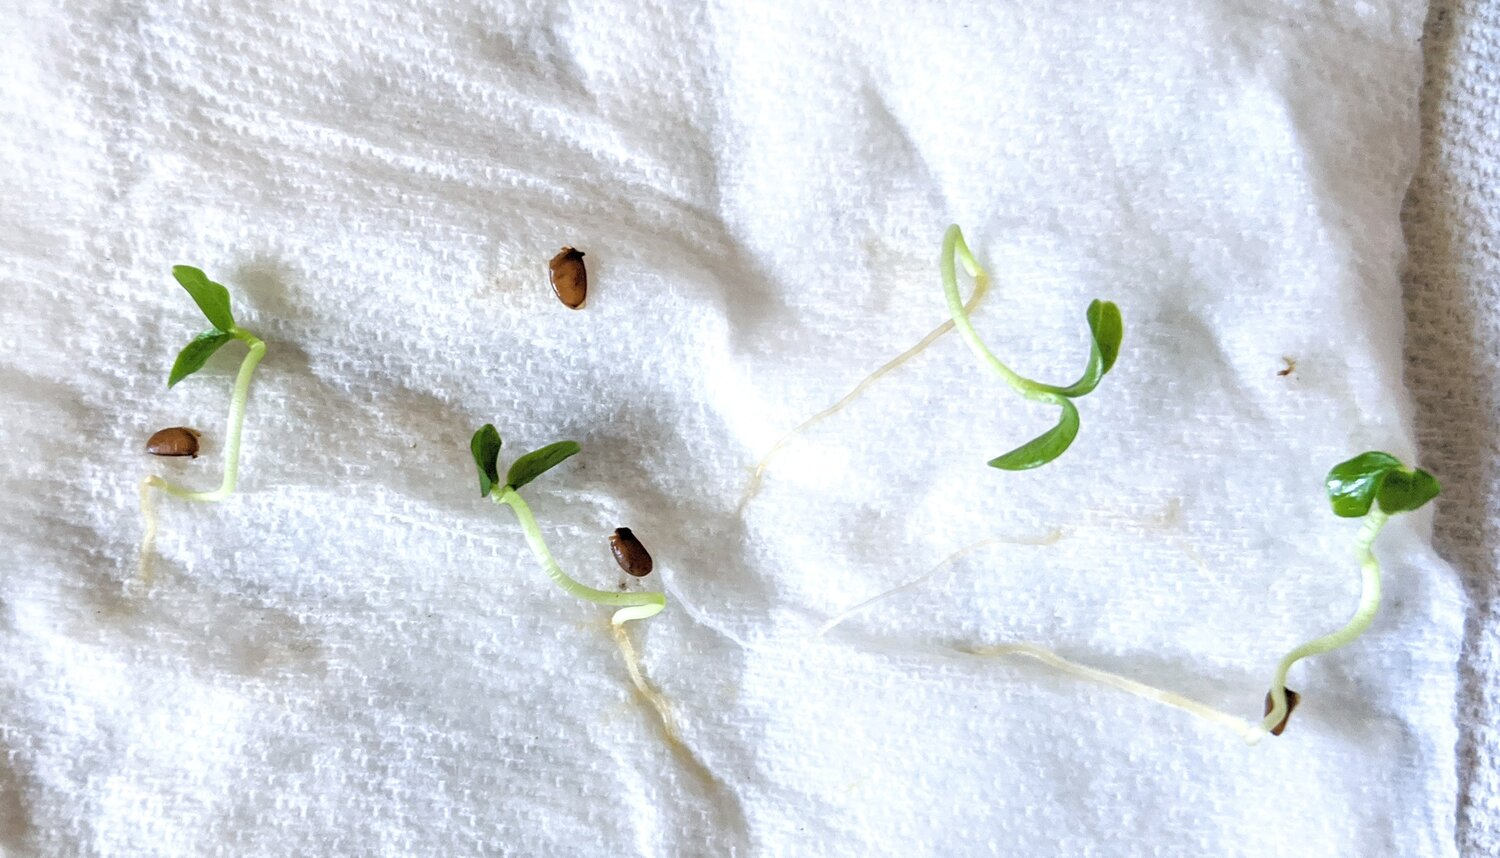 Fatsia Japonica sprouts germinated via the paper towel method. You should pot them up before they look like this, I just kept them here like so for fun :)